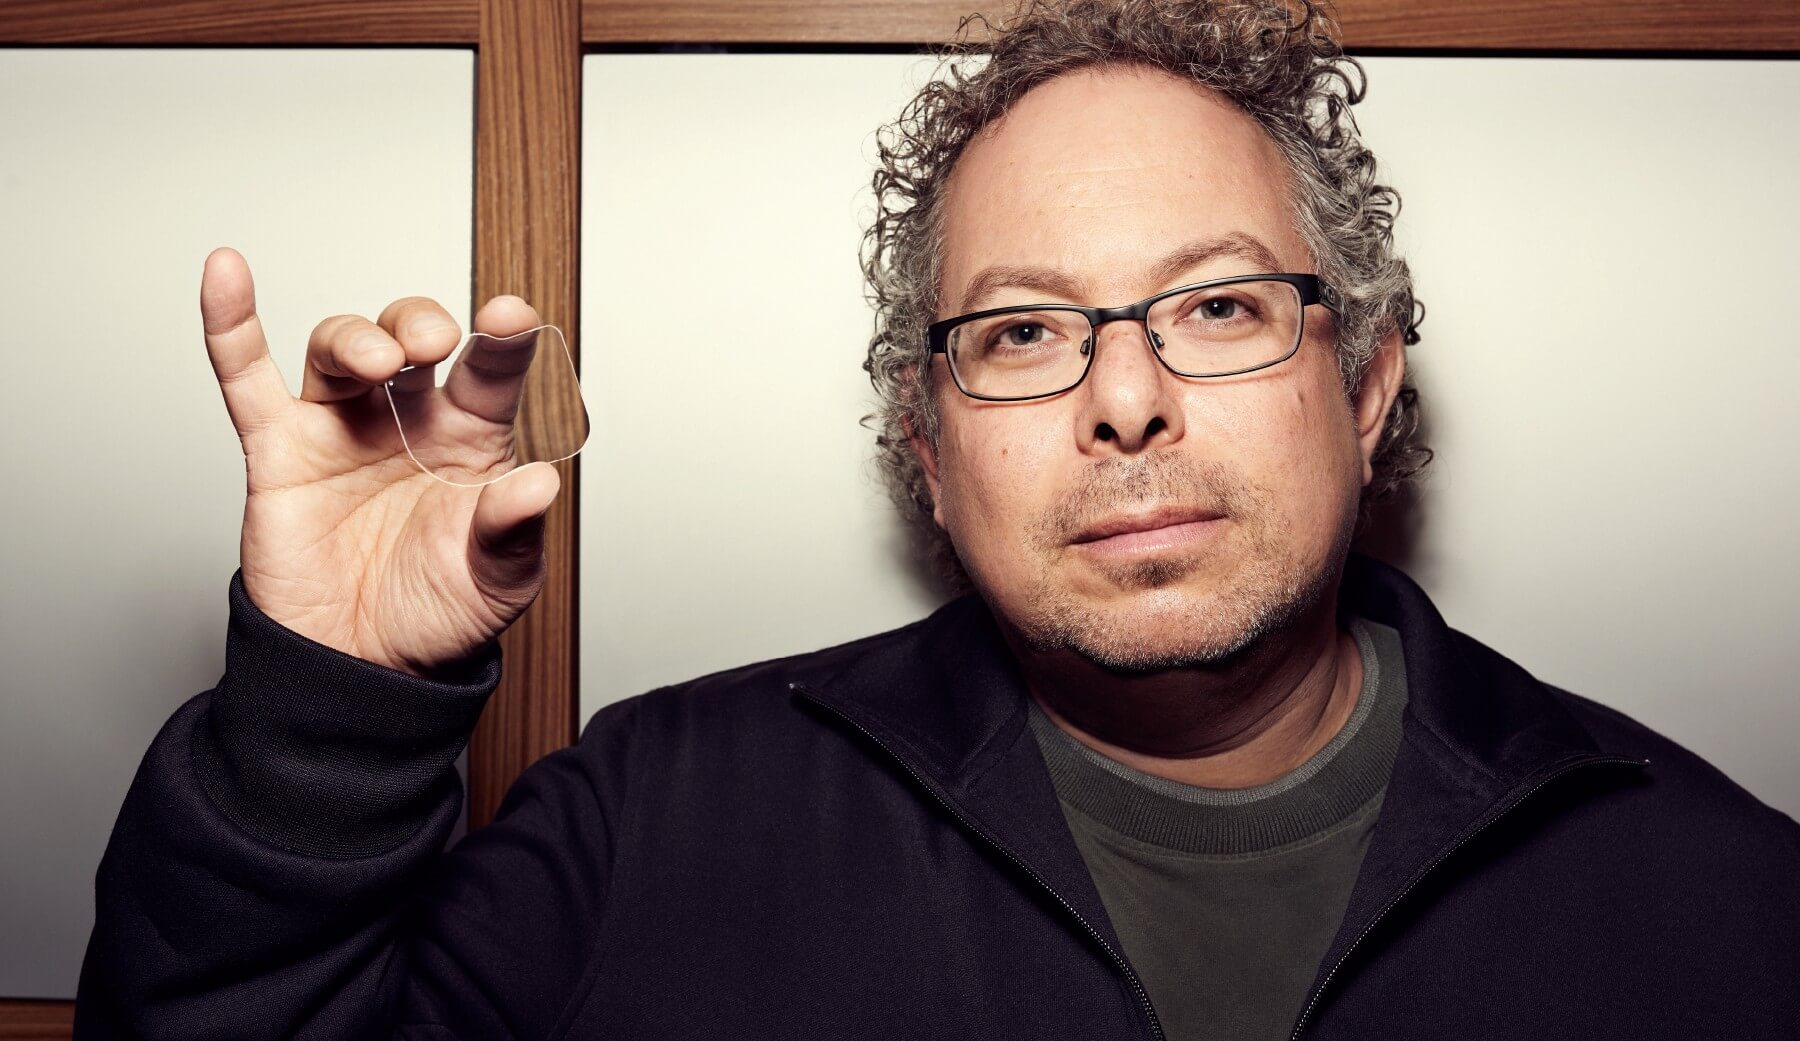 Magic Leap is looking for a new CEO as founder Rony Abovitz is stepping down